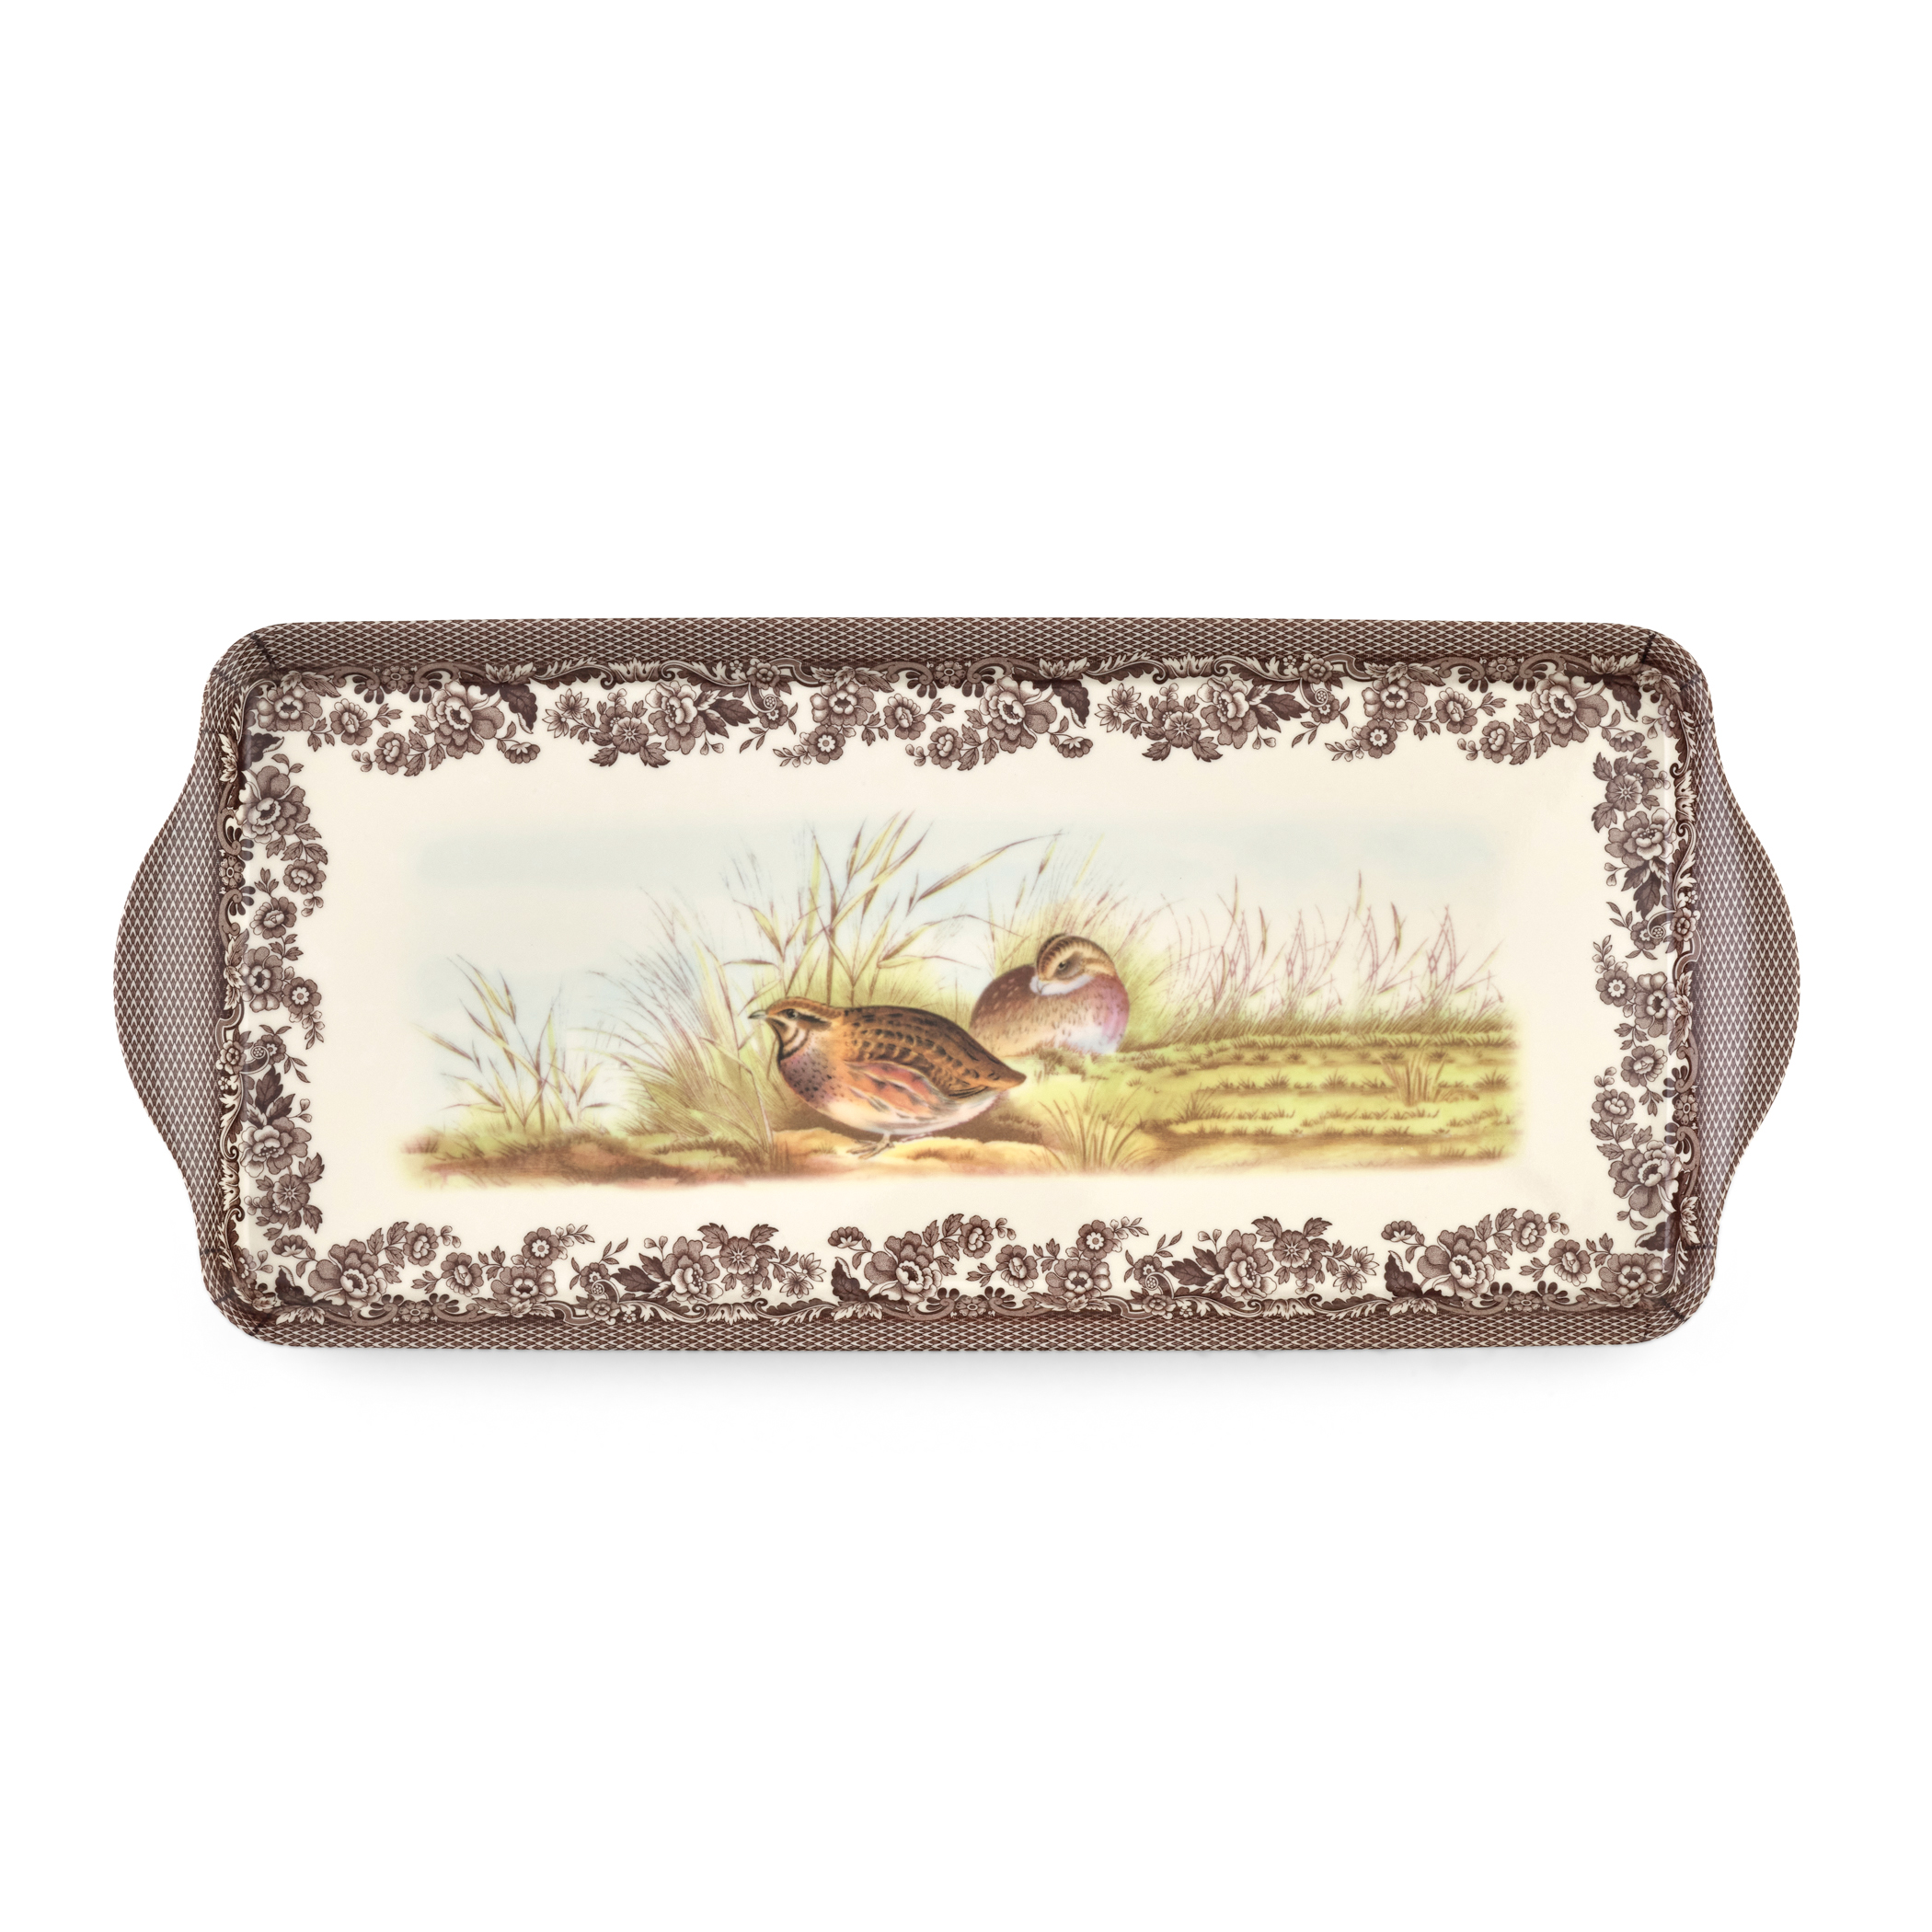 Pimpernel Spode Woodland Sandwich Tray image number 0